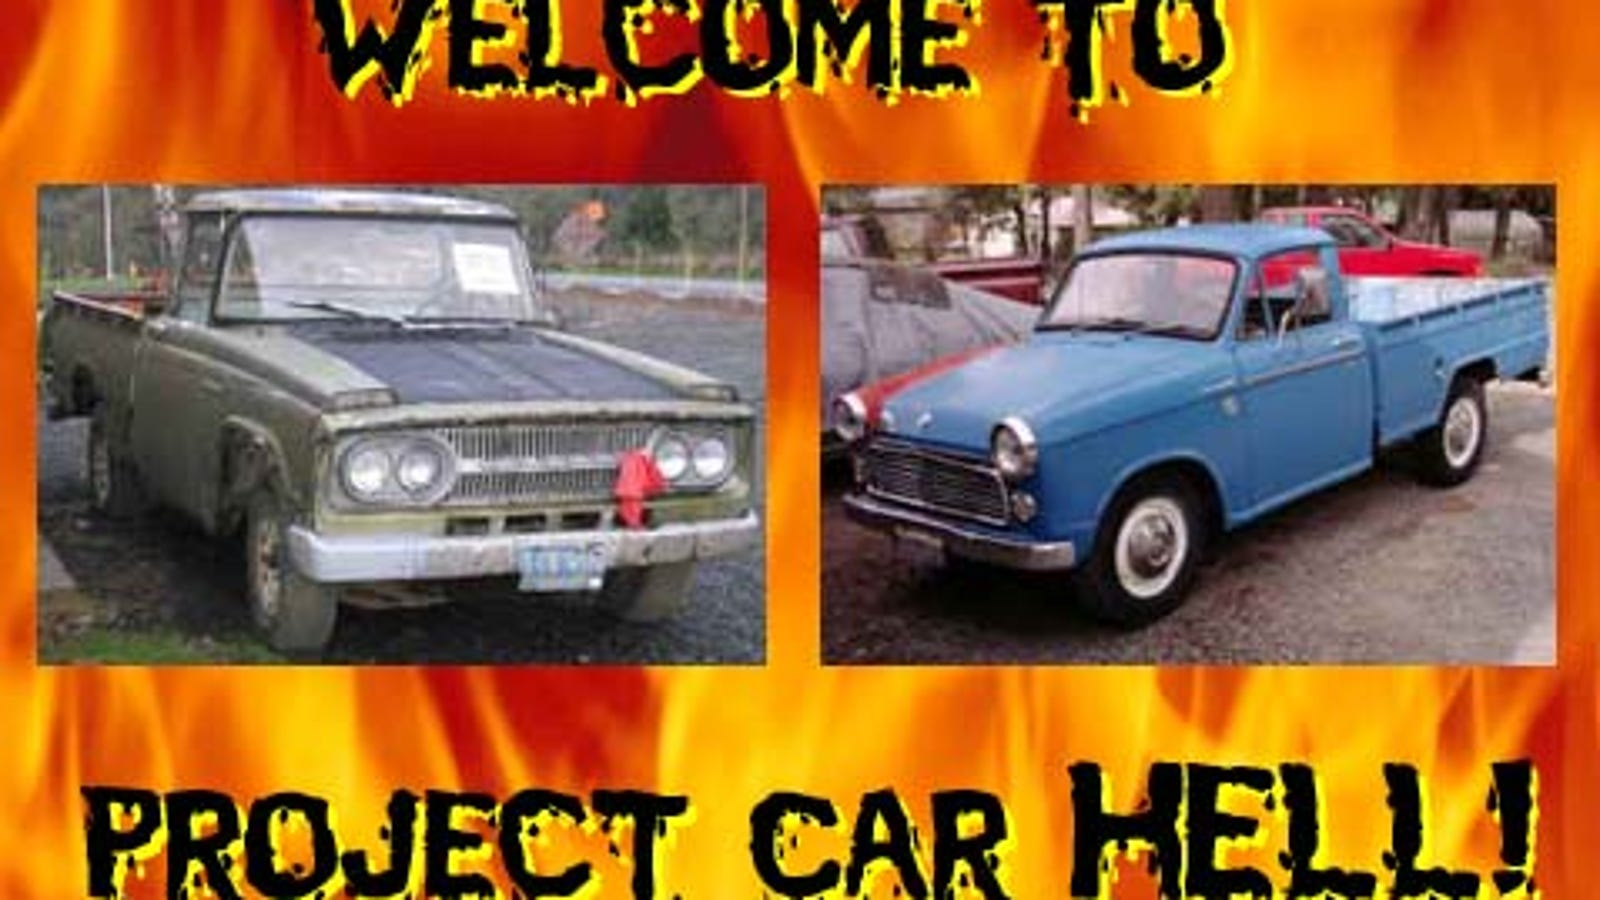 Pch japanese pickup edition 1966 toyota or 1962 datsun for Nice pipes net worth